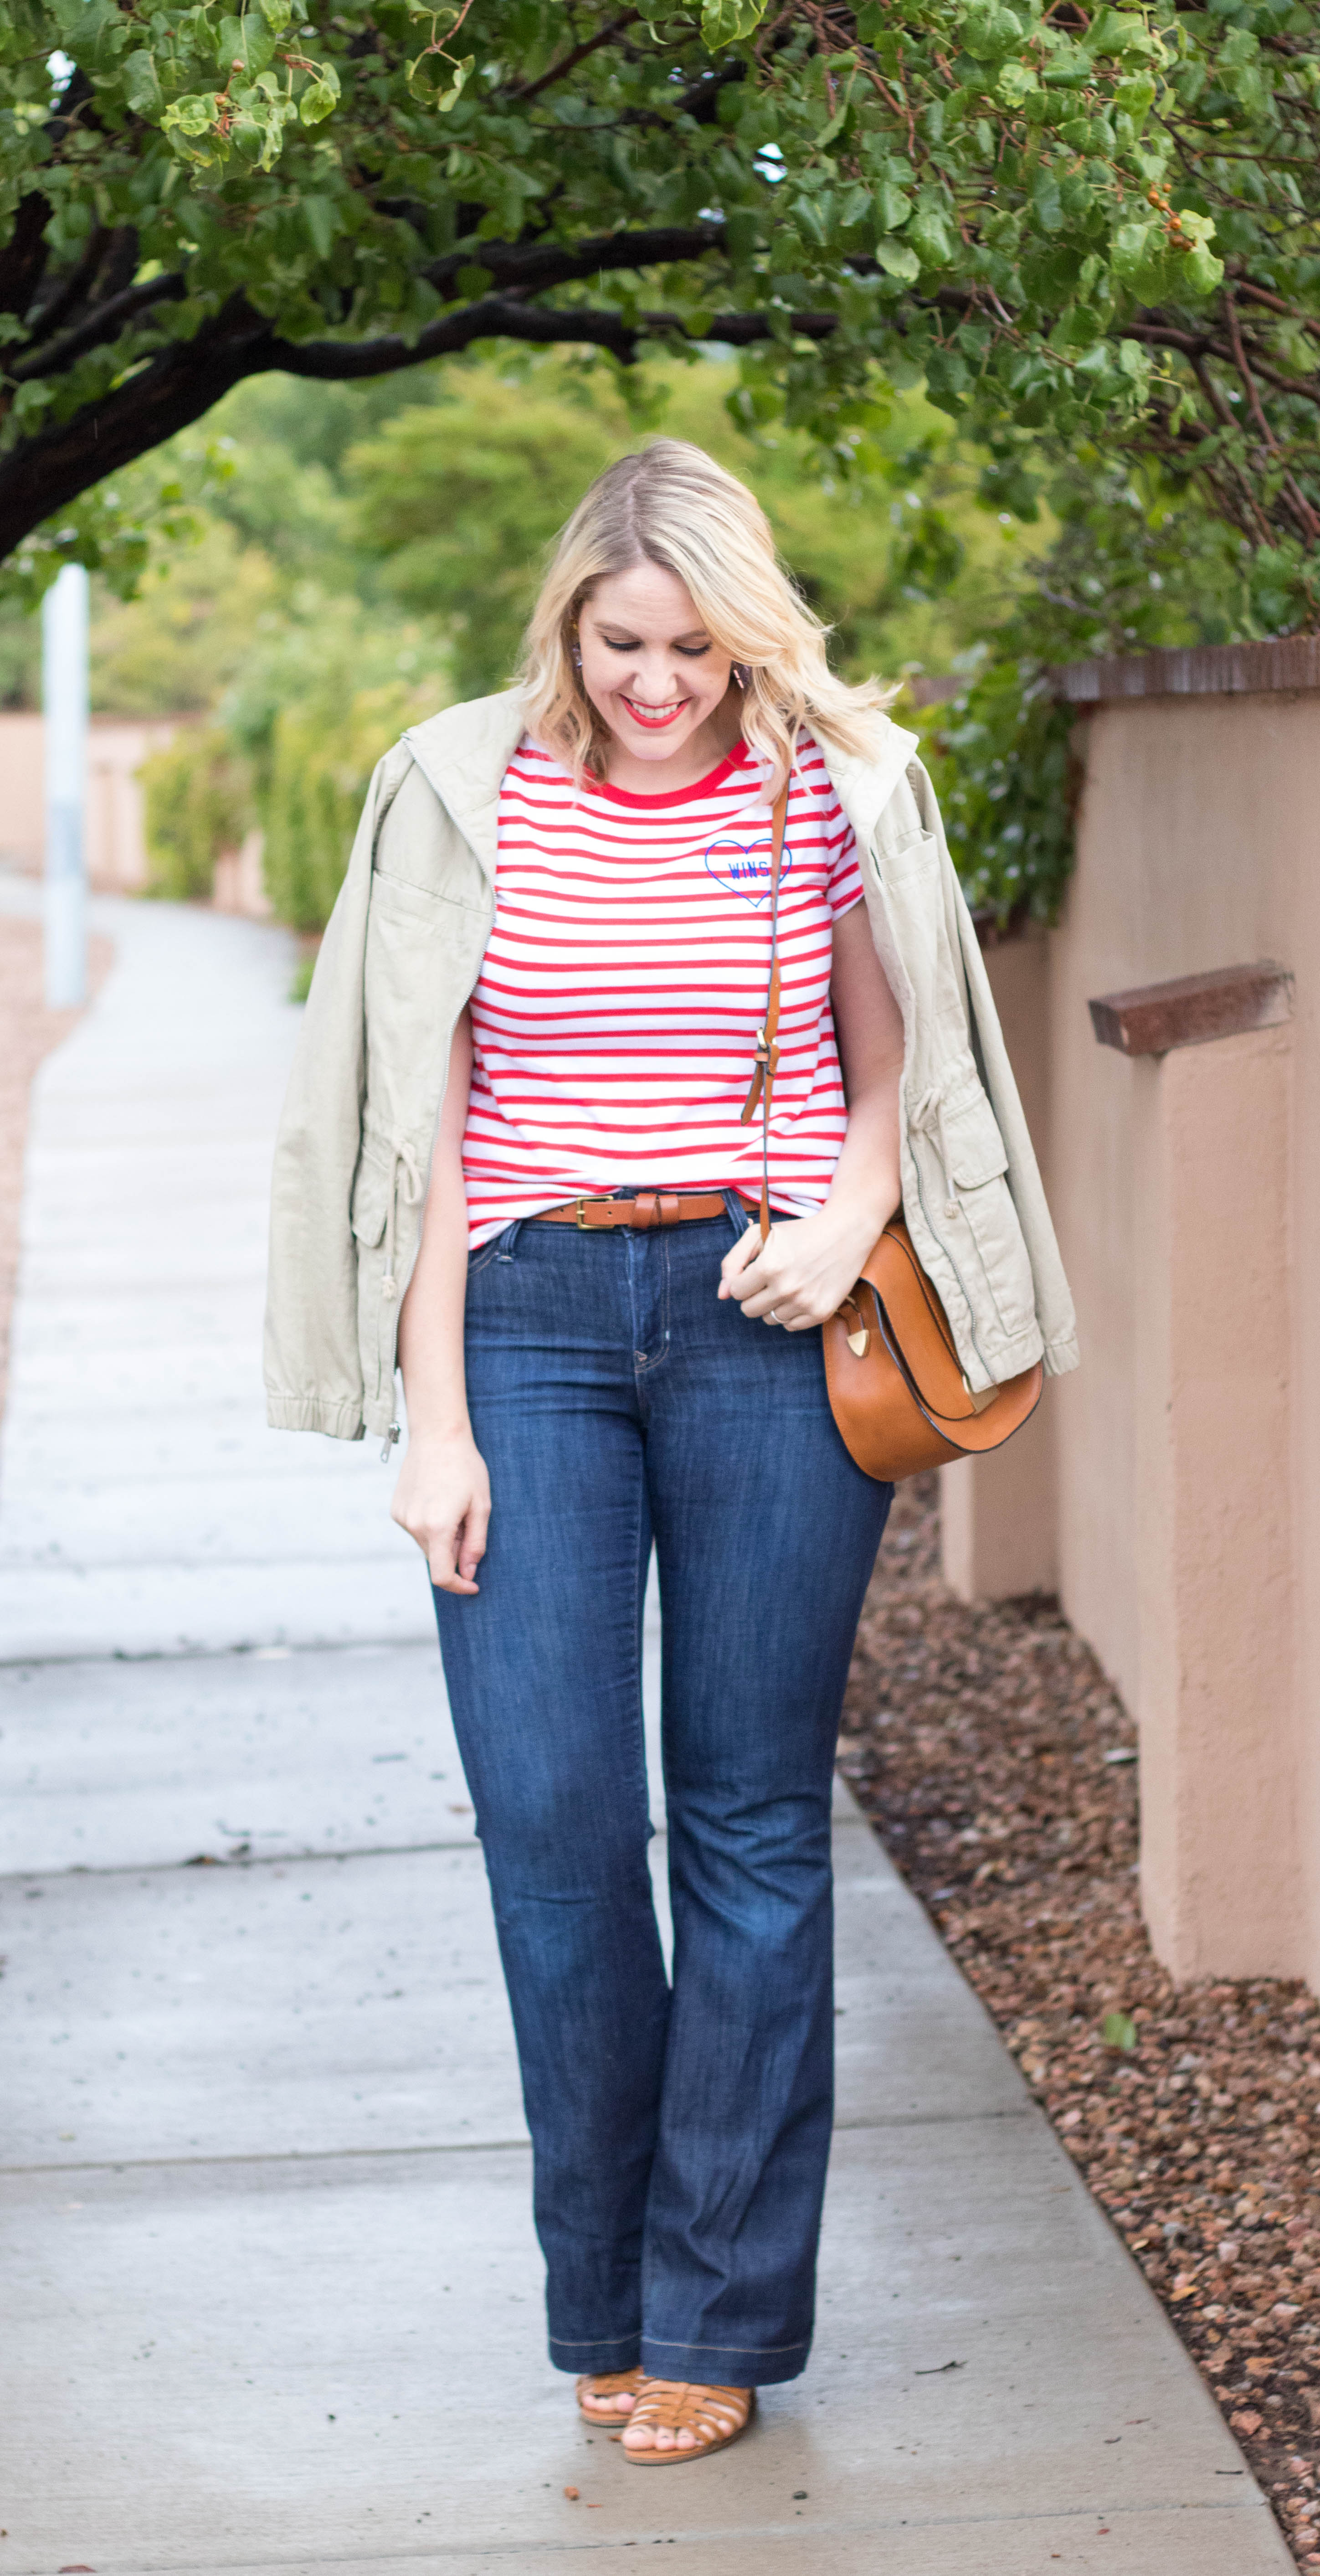 flare jeans for fall #flarejeans #denim #jeansoutfit #gap